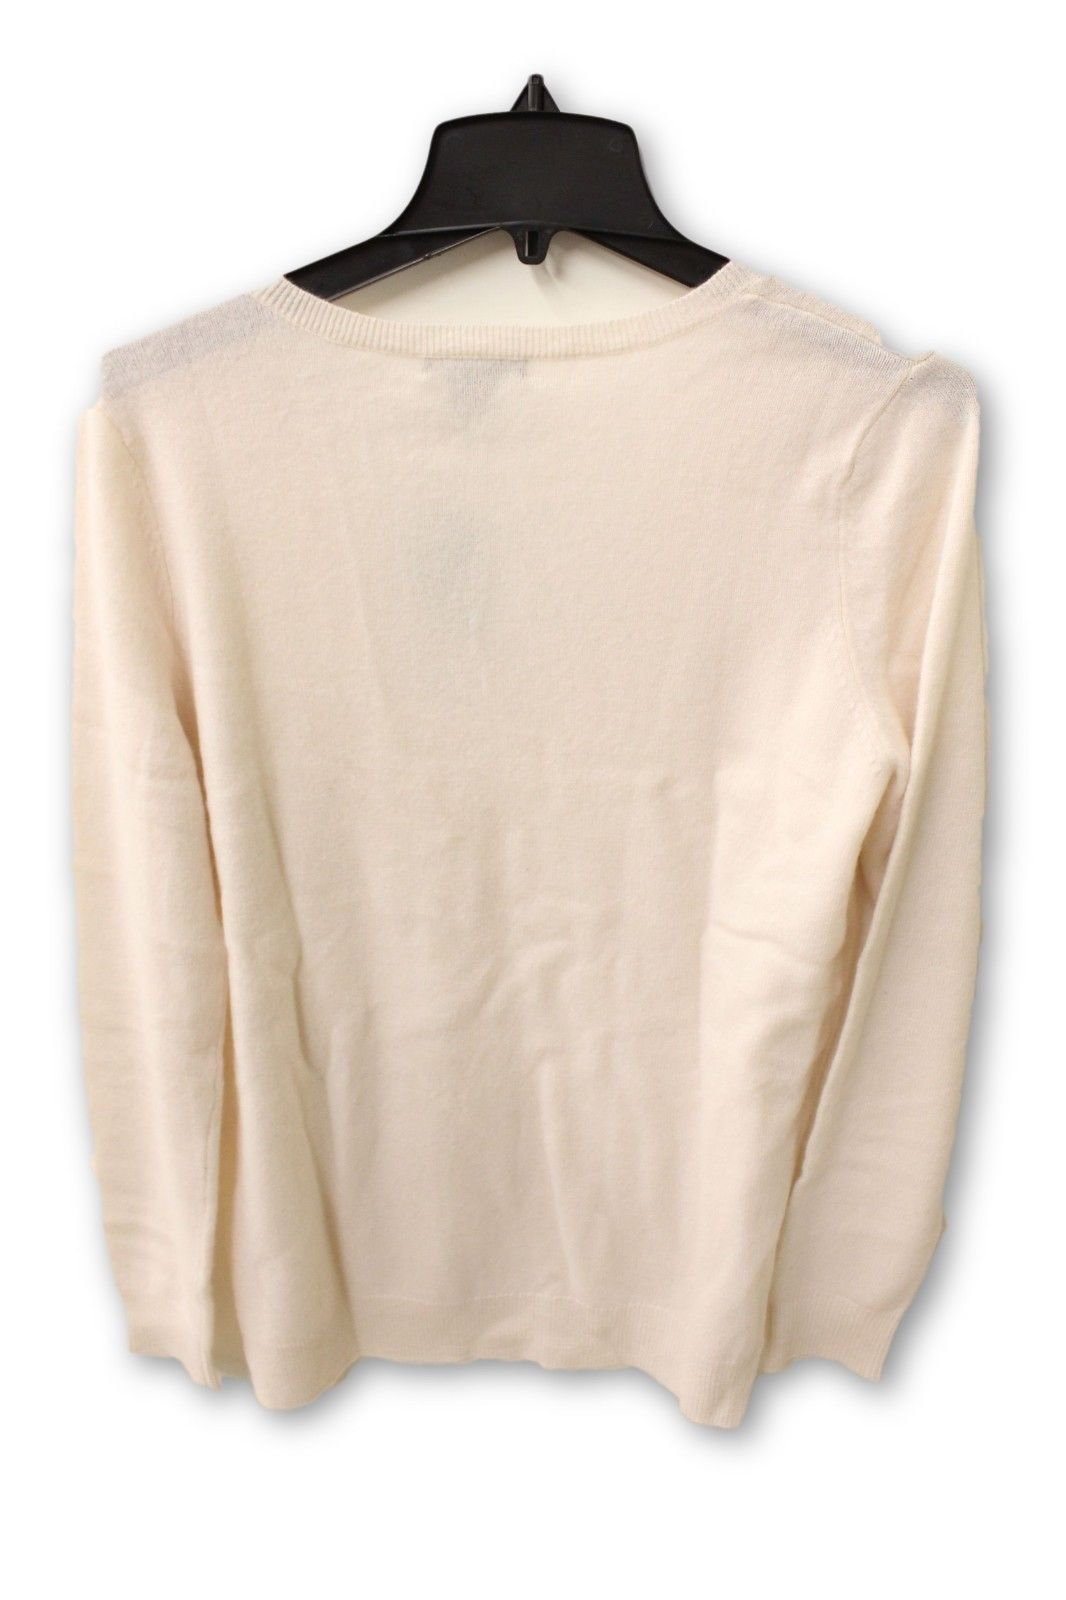 C by Bloomingdale's Women's Cashmere - Beige V Neck Sweater XL NWT